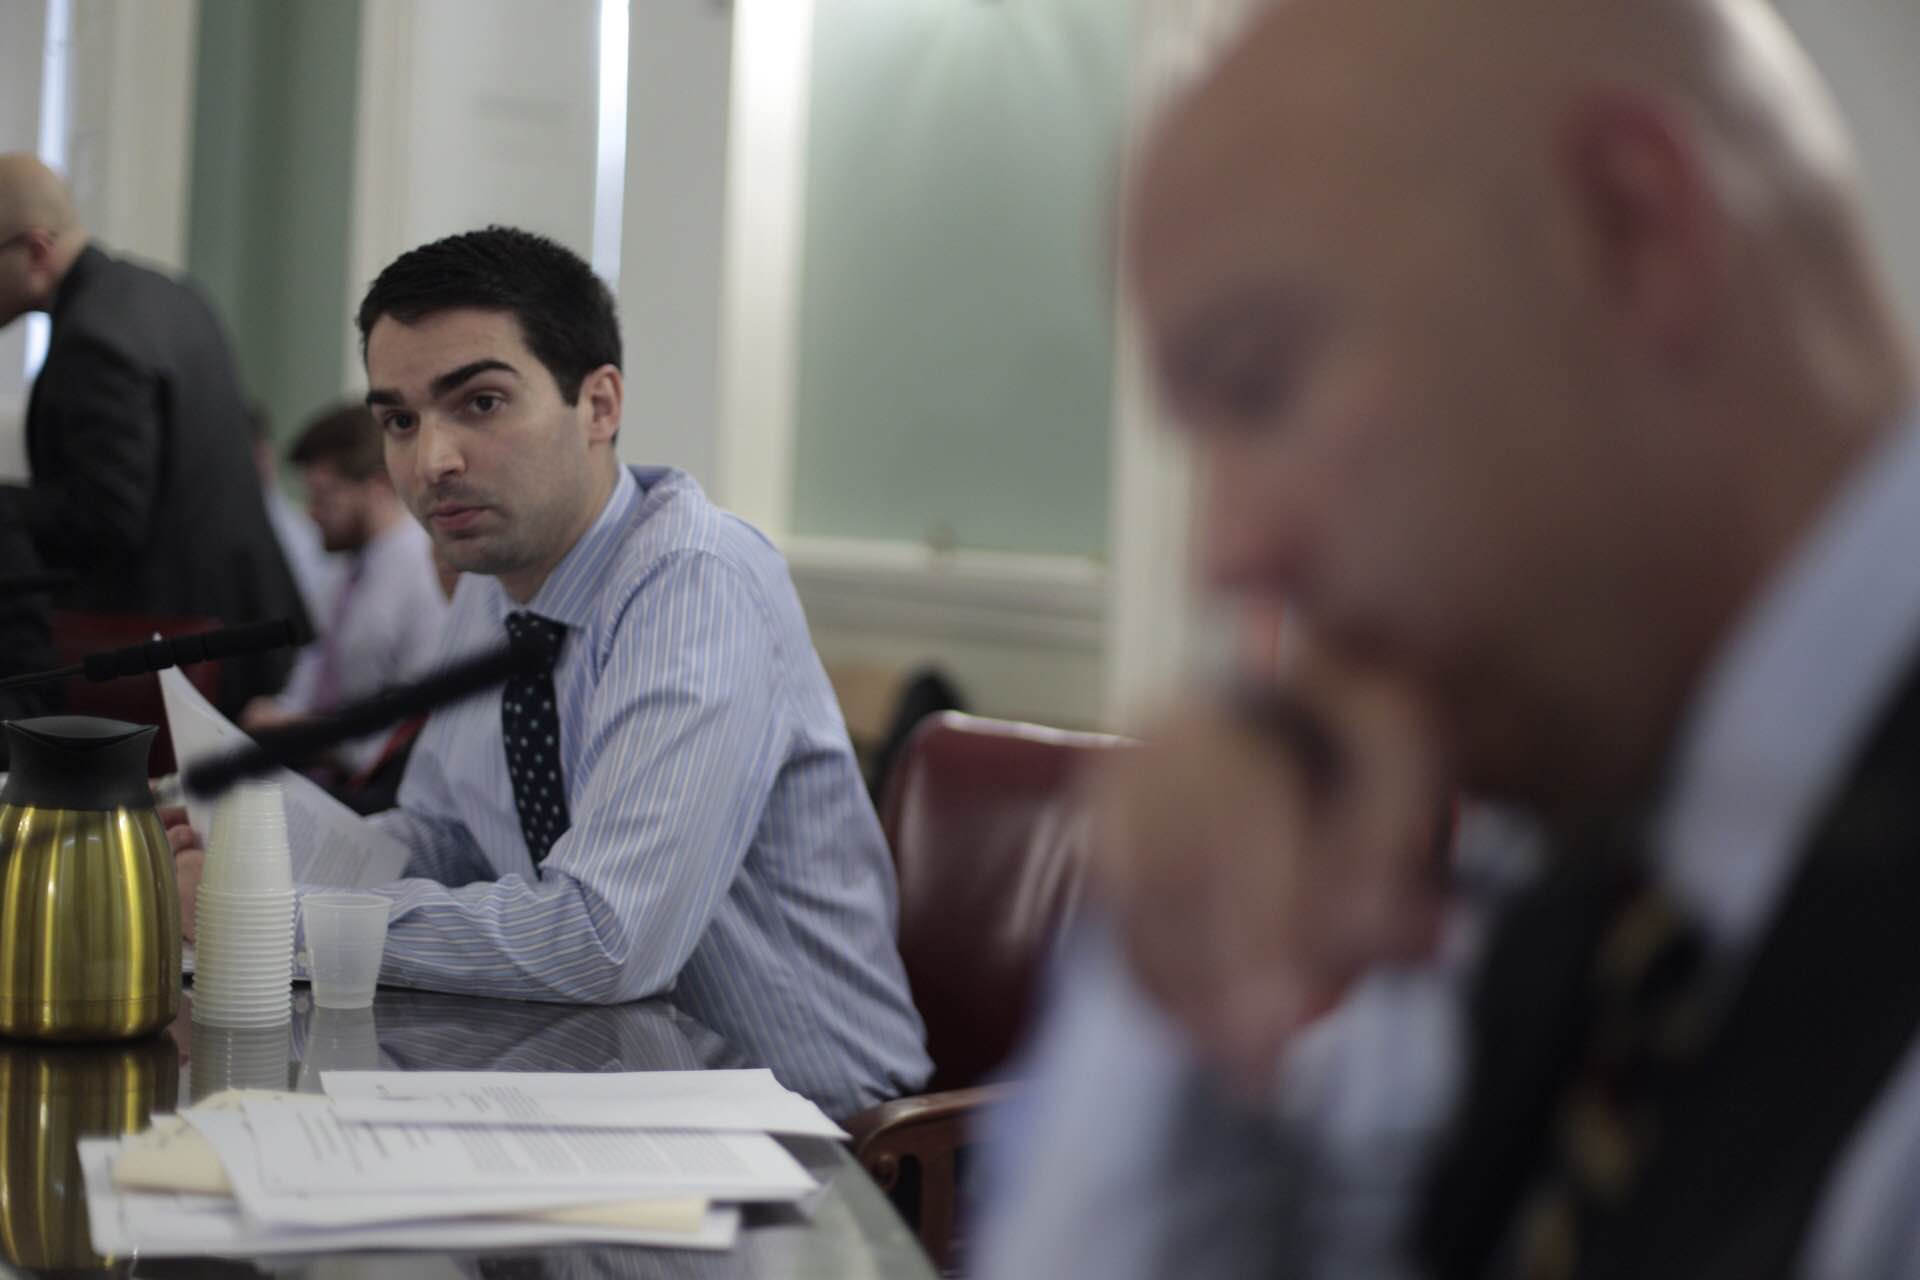 City Councilman Eric Ulrich (R-Ozone Park) chairs the council's Veterans Affairs Committee. Photo Courtesy of City Council/William Alatriste.